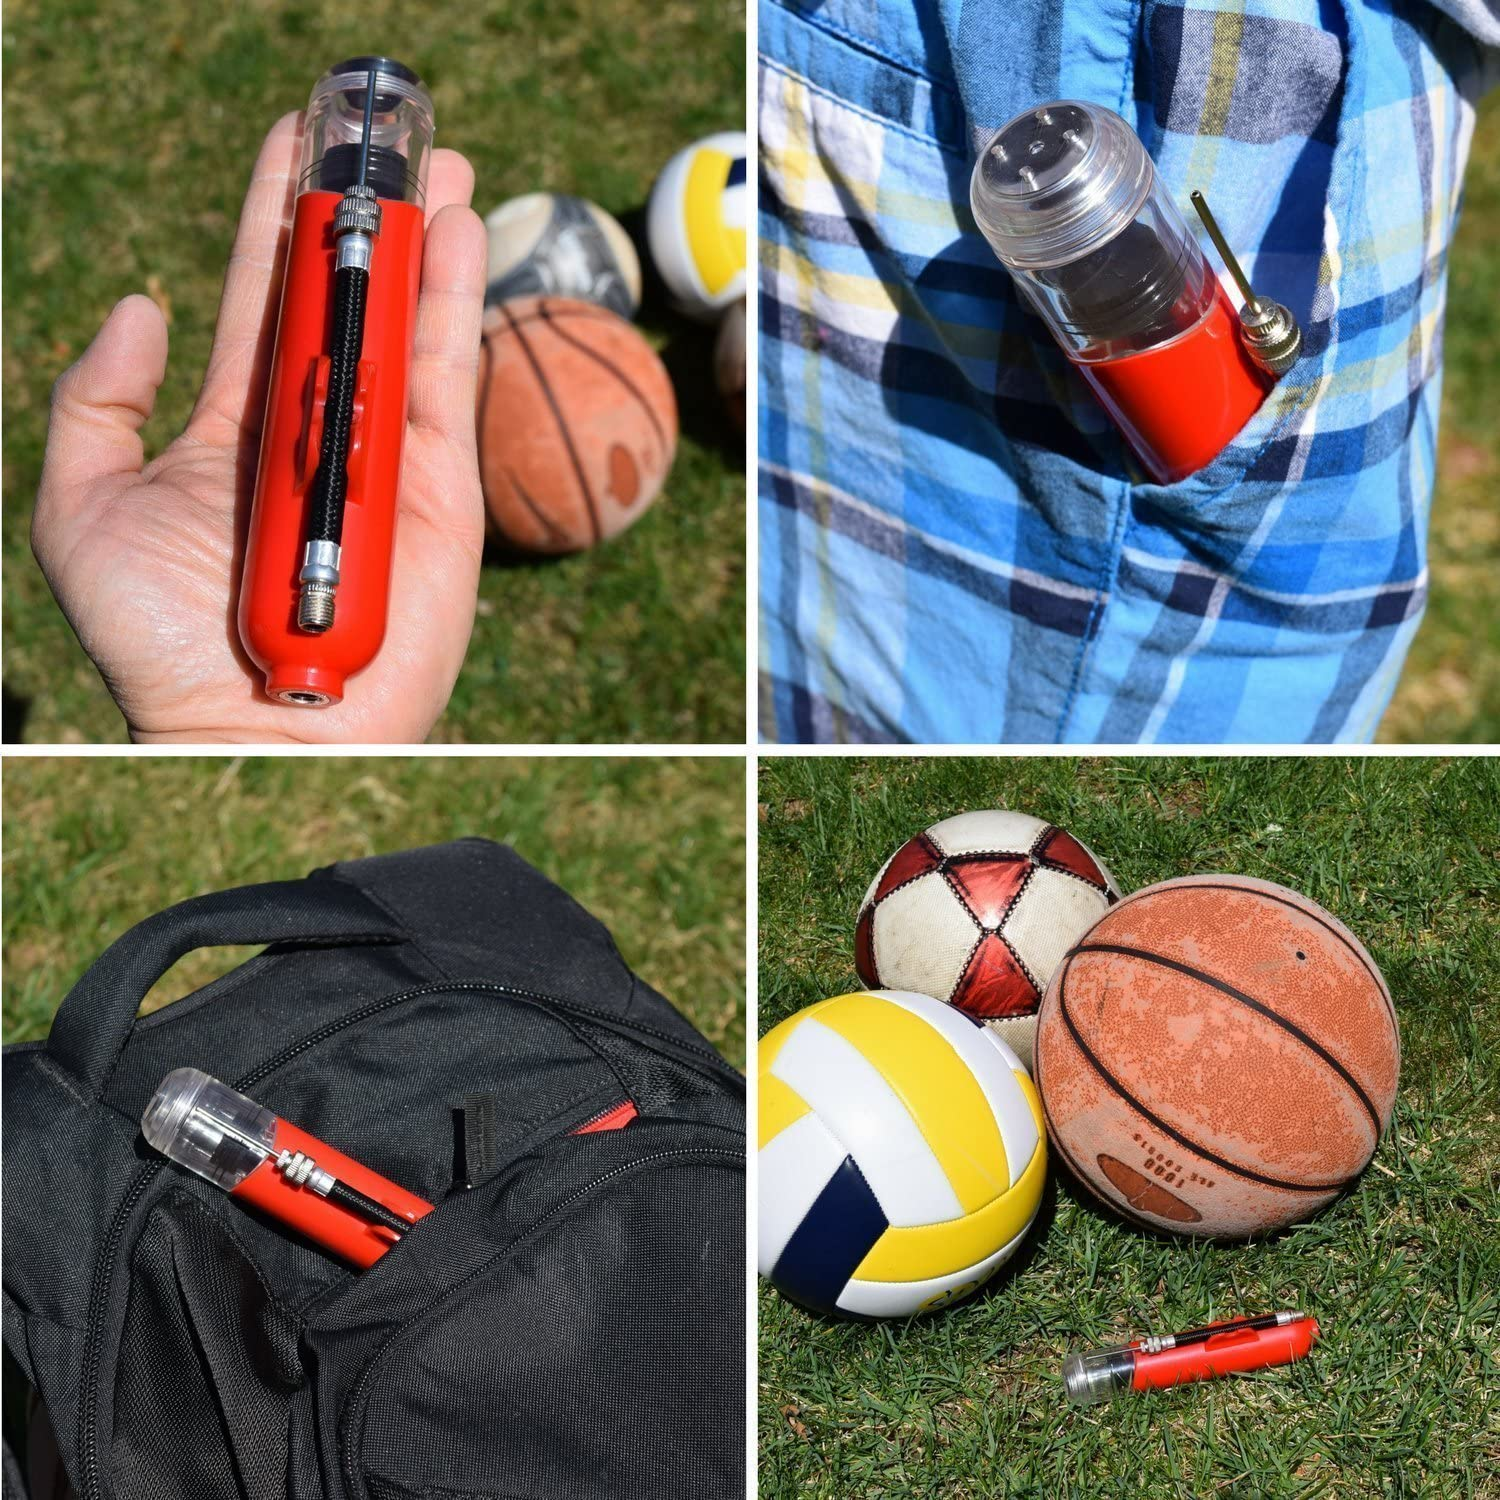 REVIVL Ball Pump with 5 Needles and 1 Nozzle - Air Pump for Inflatables, Basketball, Soccer, Volleyball, Football, Sport Ball - Dual Action for Faster Inflation - Just 6 Inches Small with Hose Holder : Sports & Outdoors